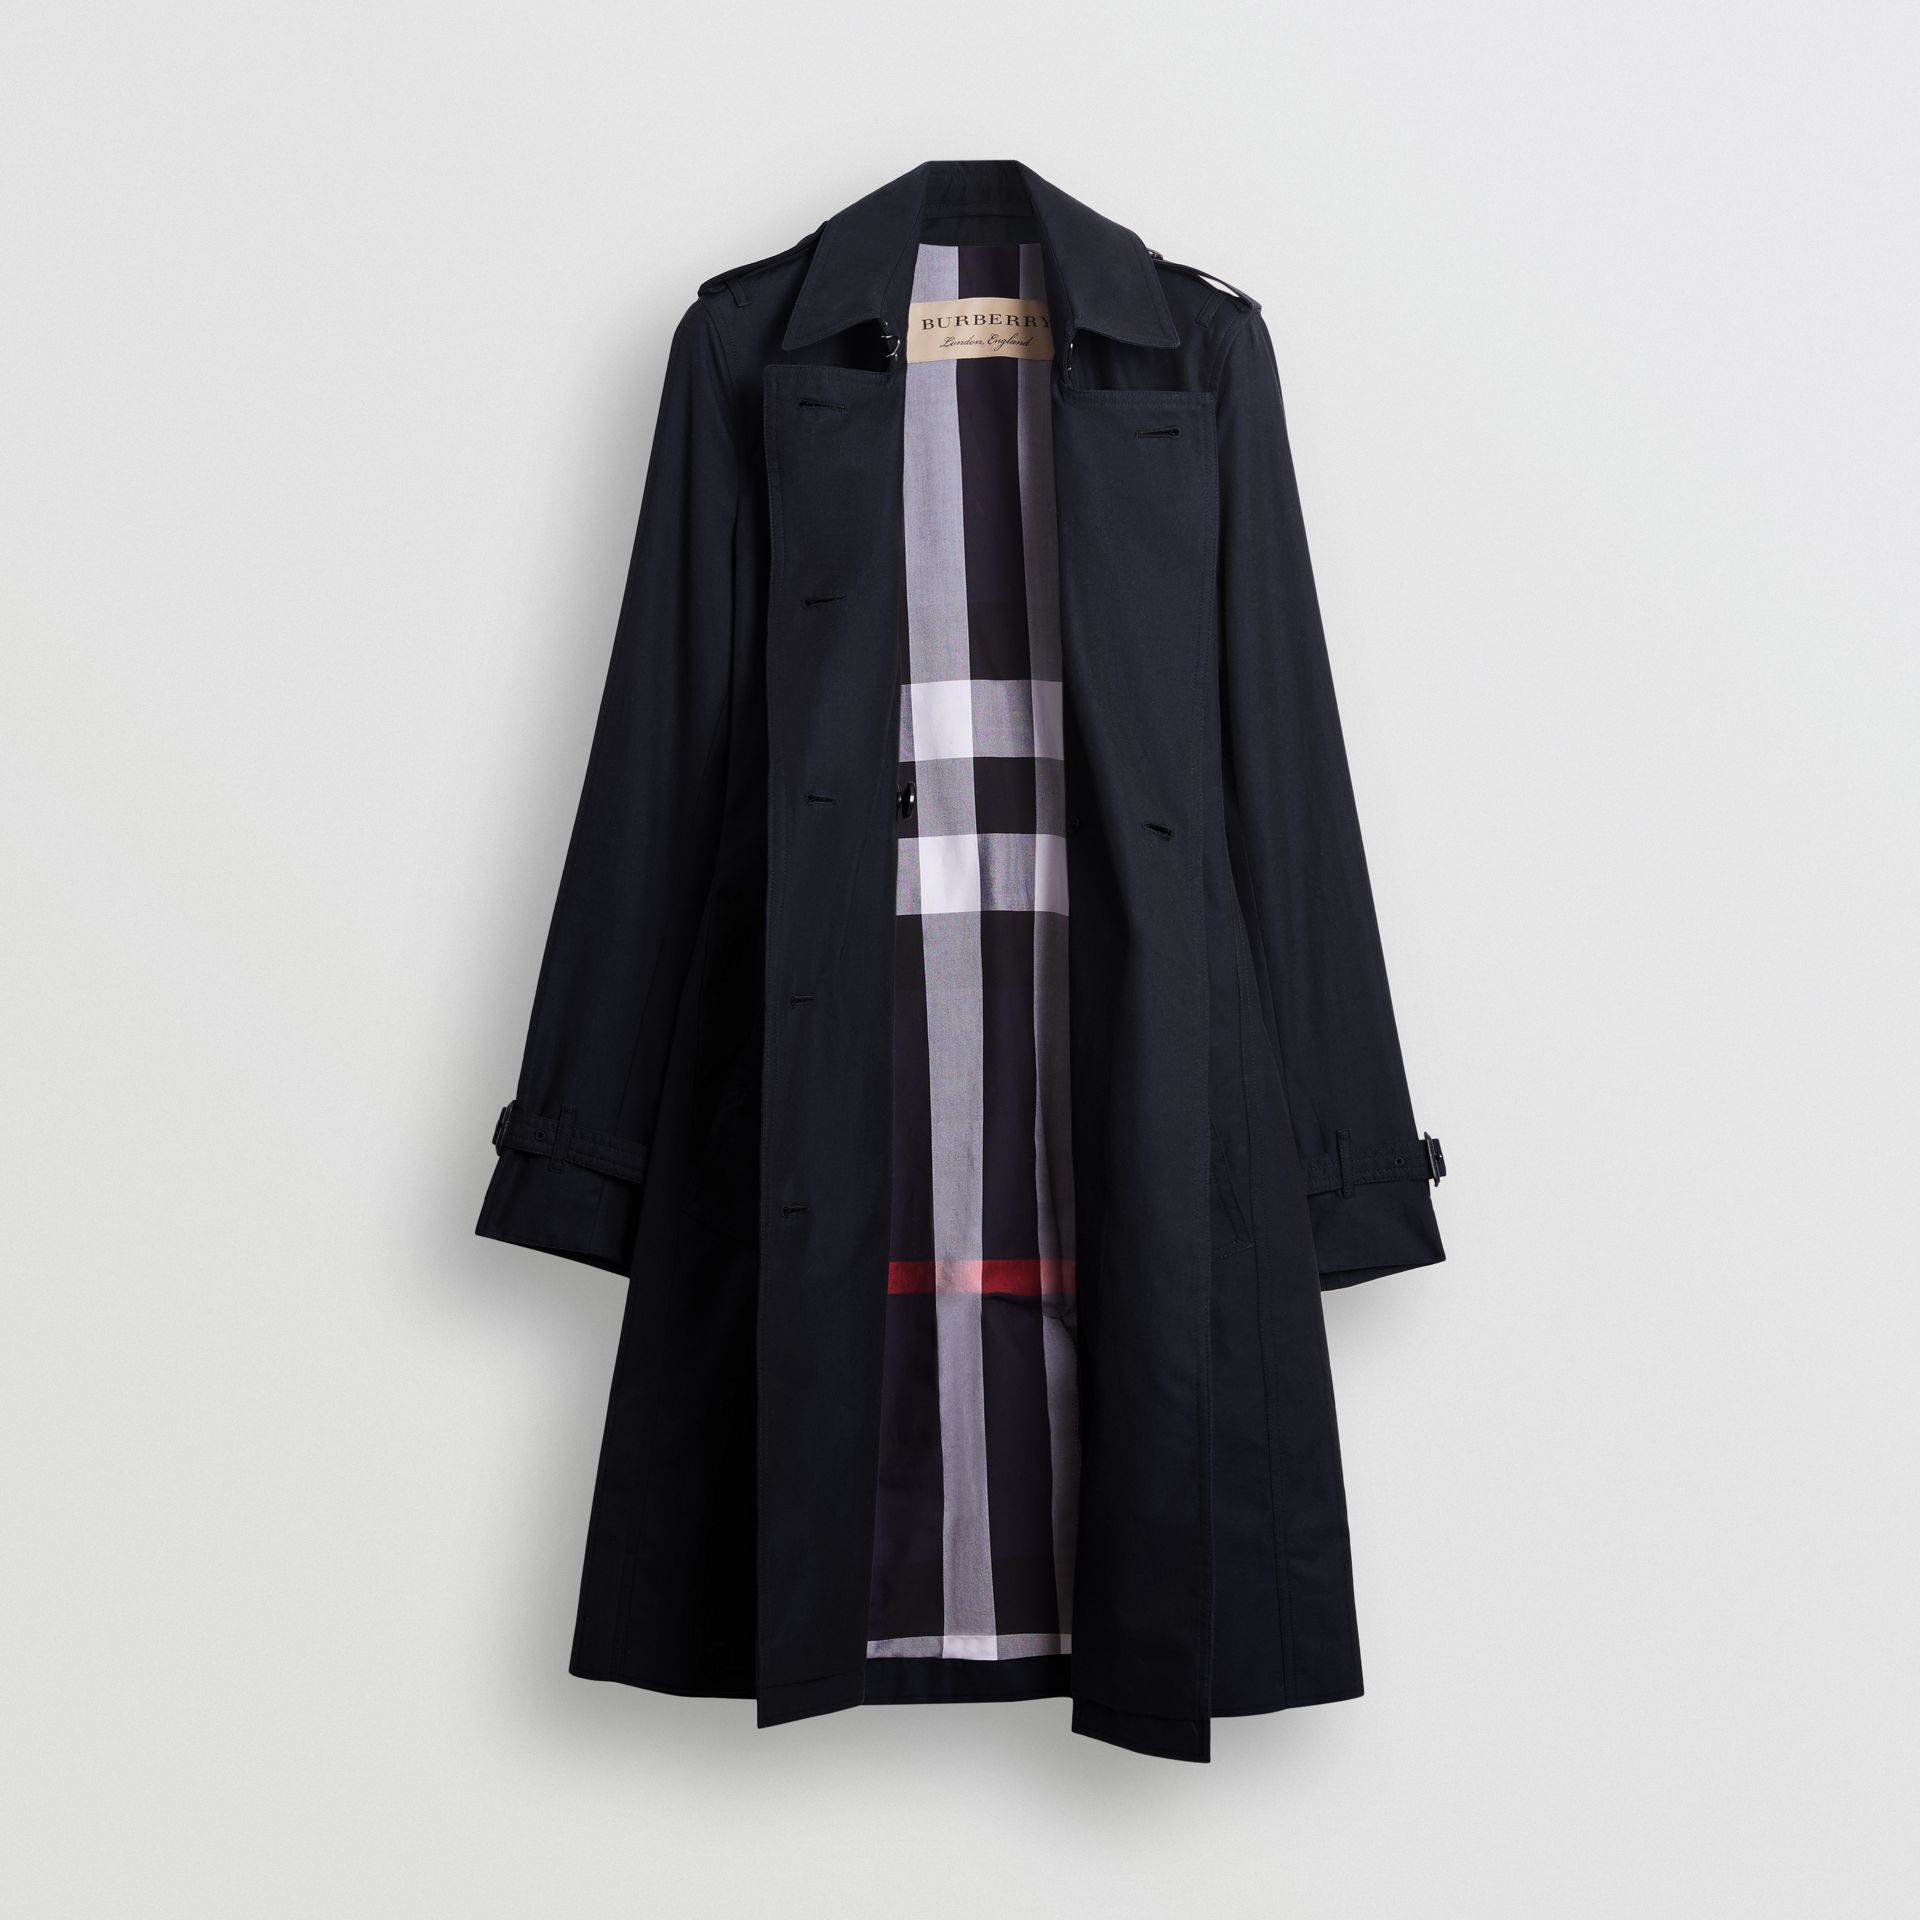 Kensington Fit Cotton Gabardine Trench Coat in Blue Carbon - Women | Burberry - gallery image 7